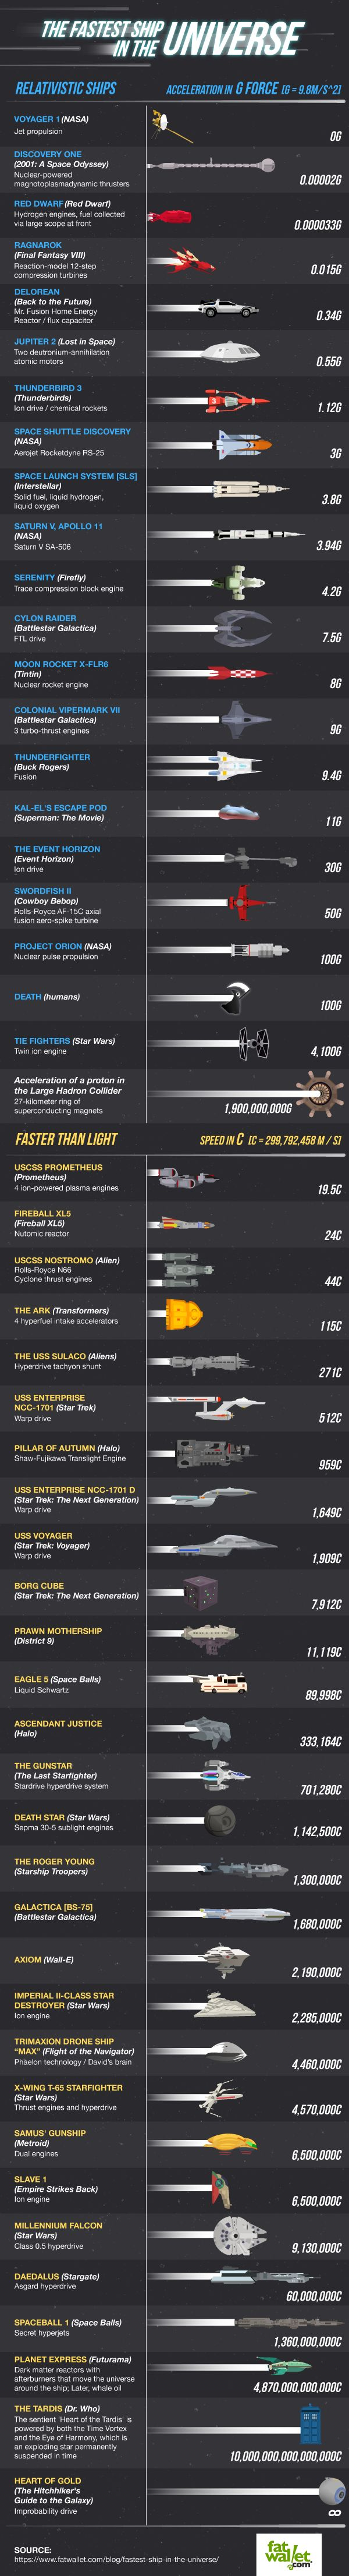 An illustrated guide to the fastest spaceships in the universe